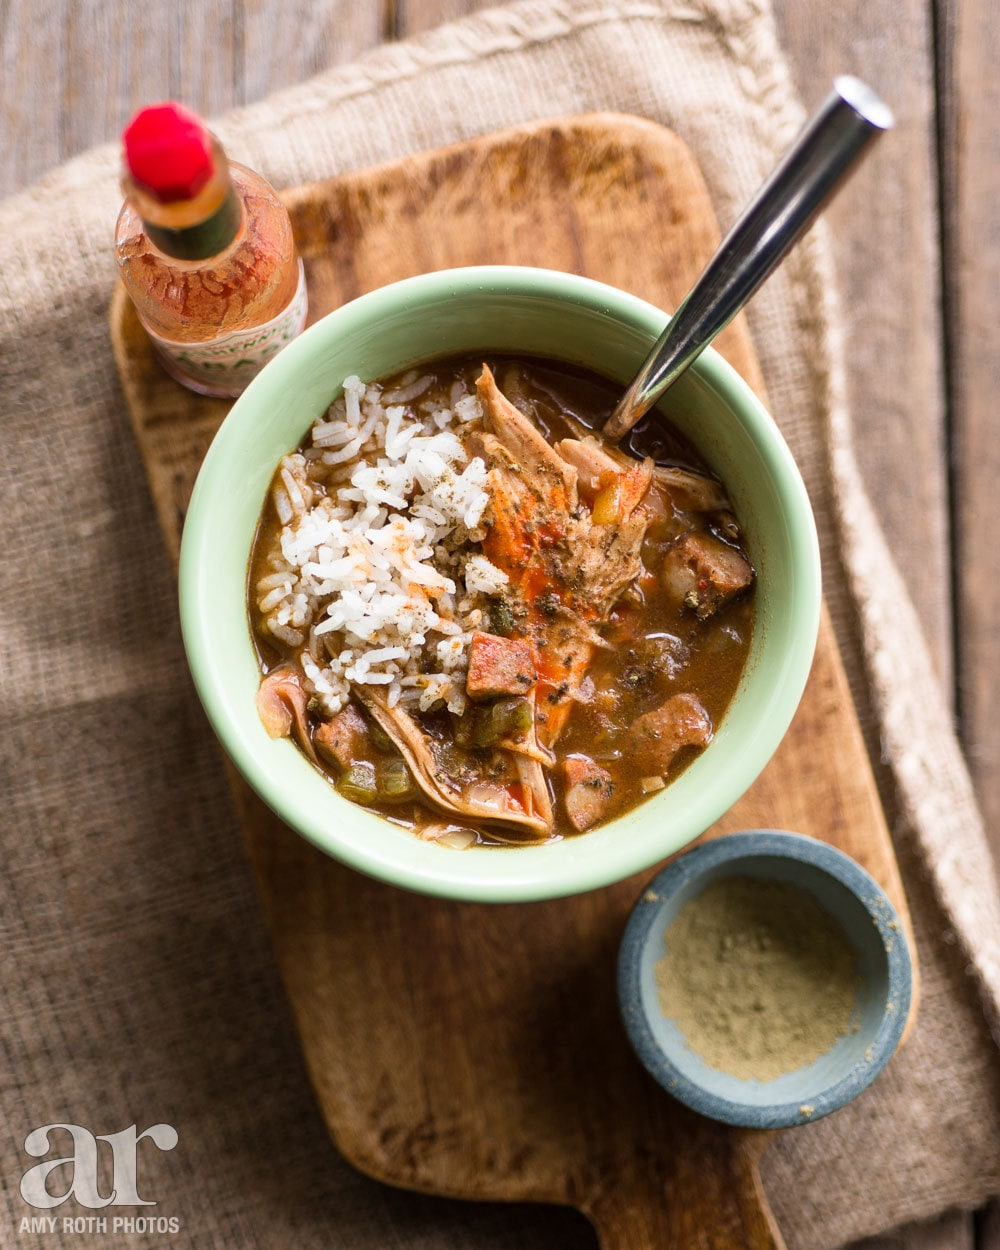 Gumbo Food Photography Photo Print Wall Art Cajun